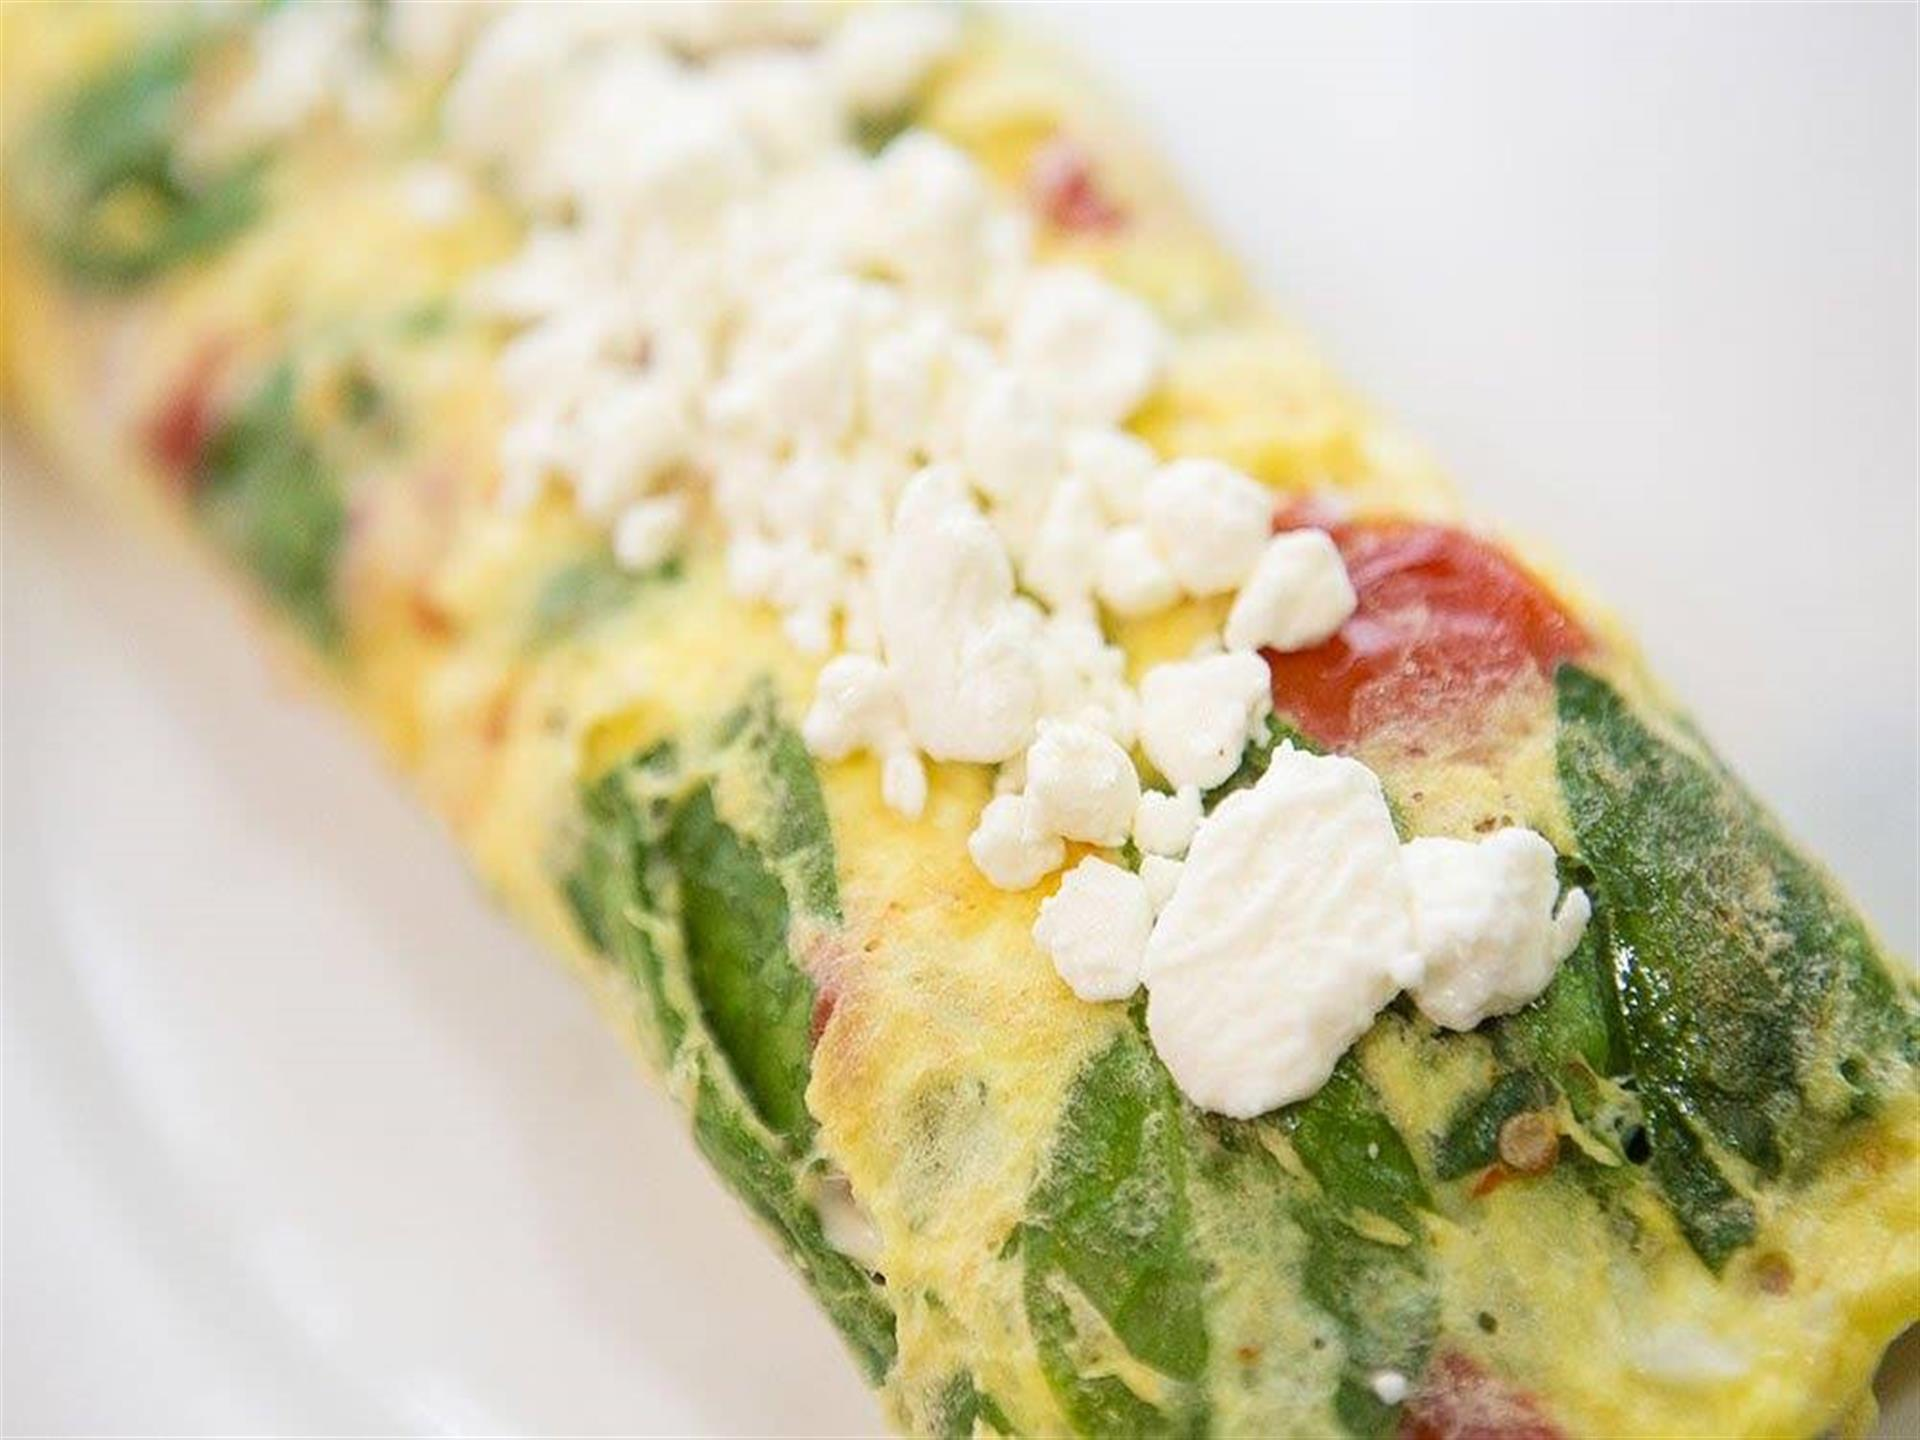 Spinach and tomato omelet with feta cheese